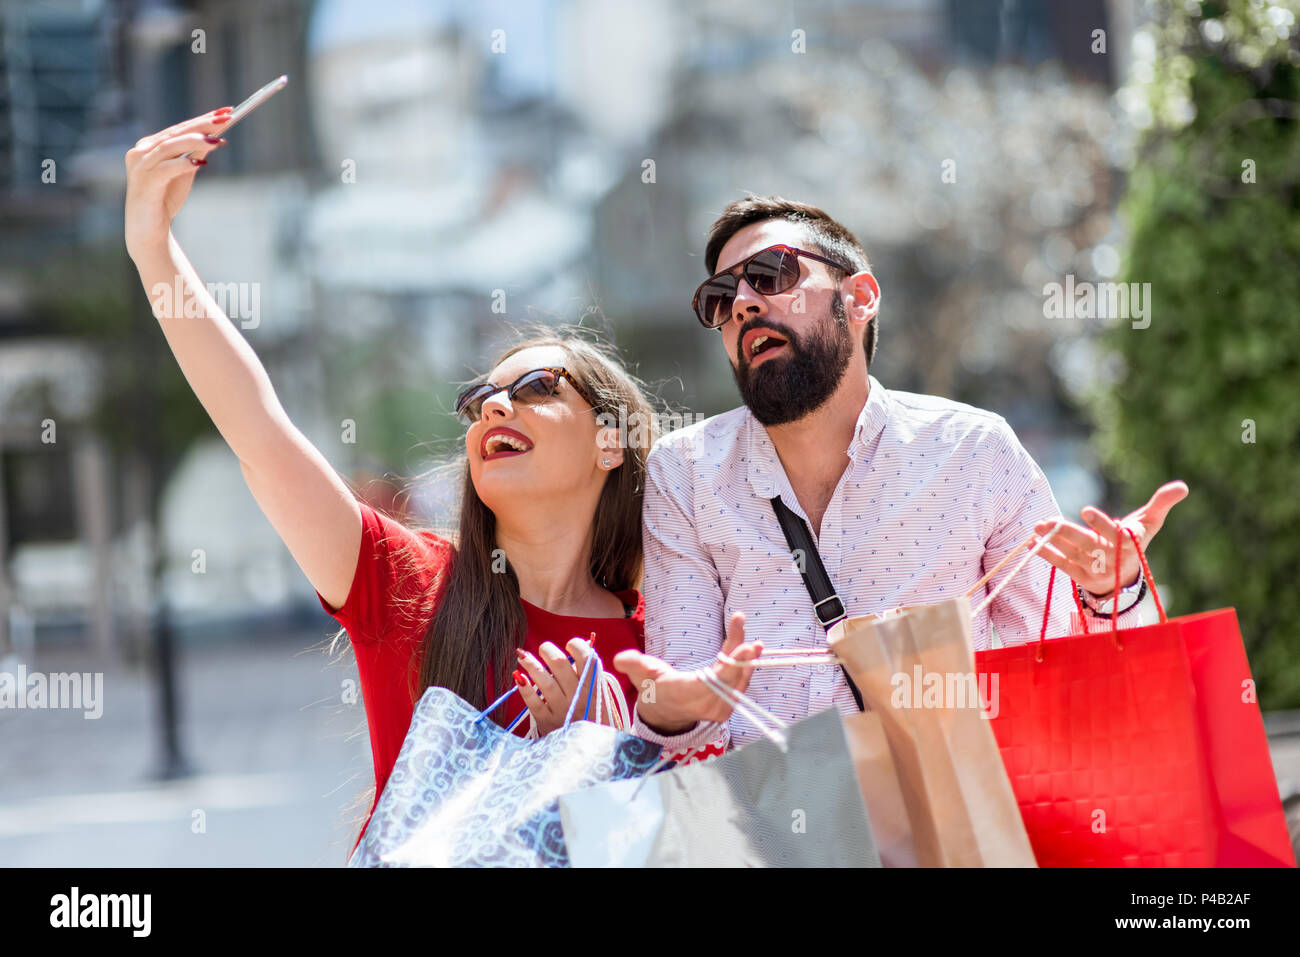 Shoping in the city.Loverly couple having fun on the Macedonian streets. - Stock Image